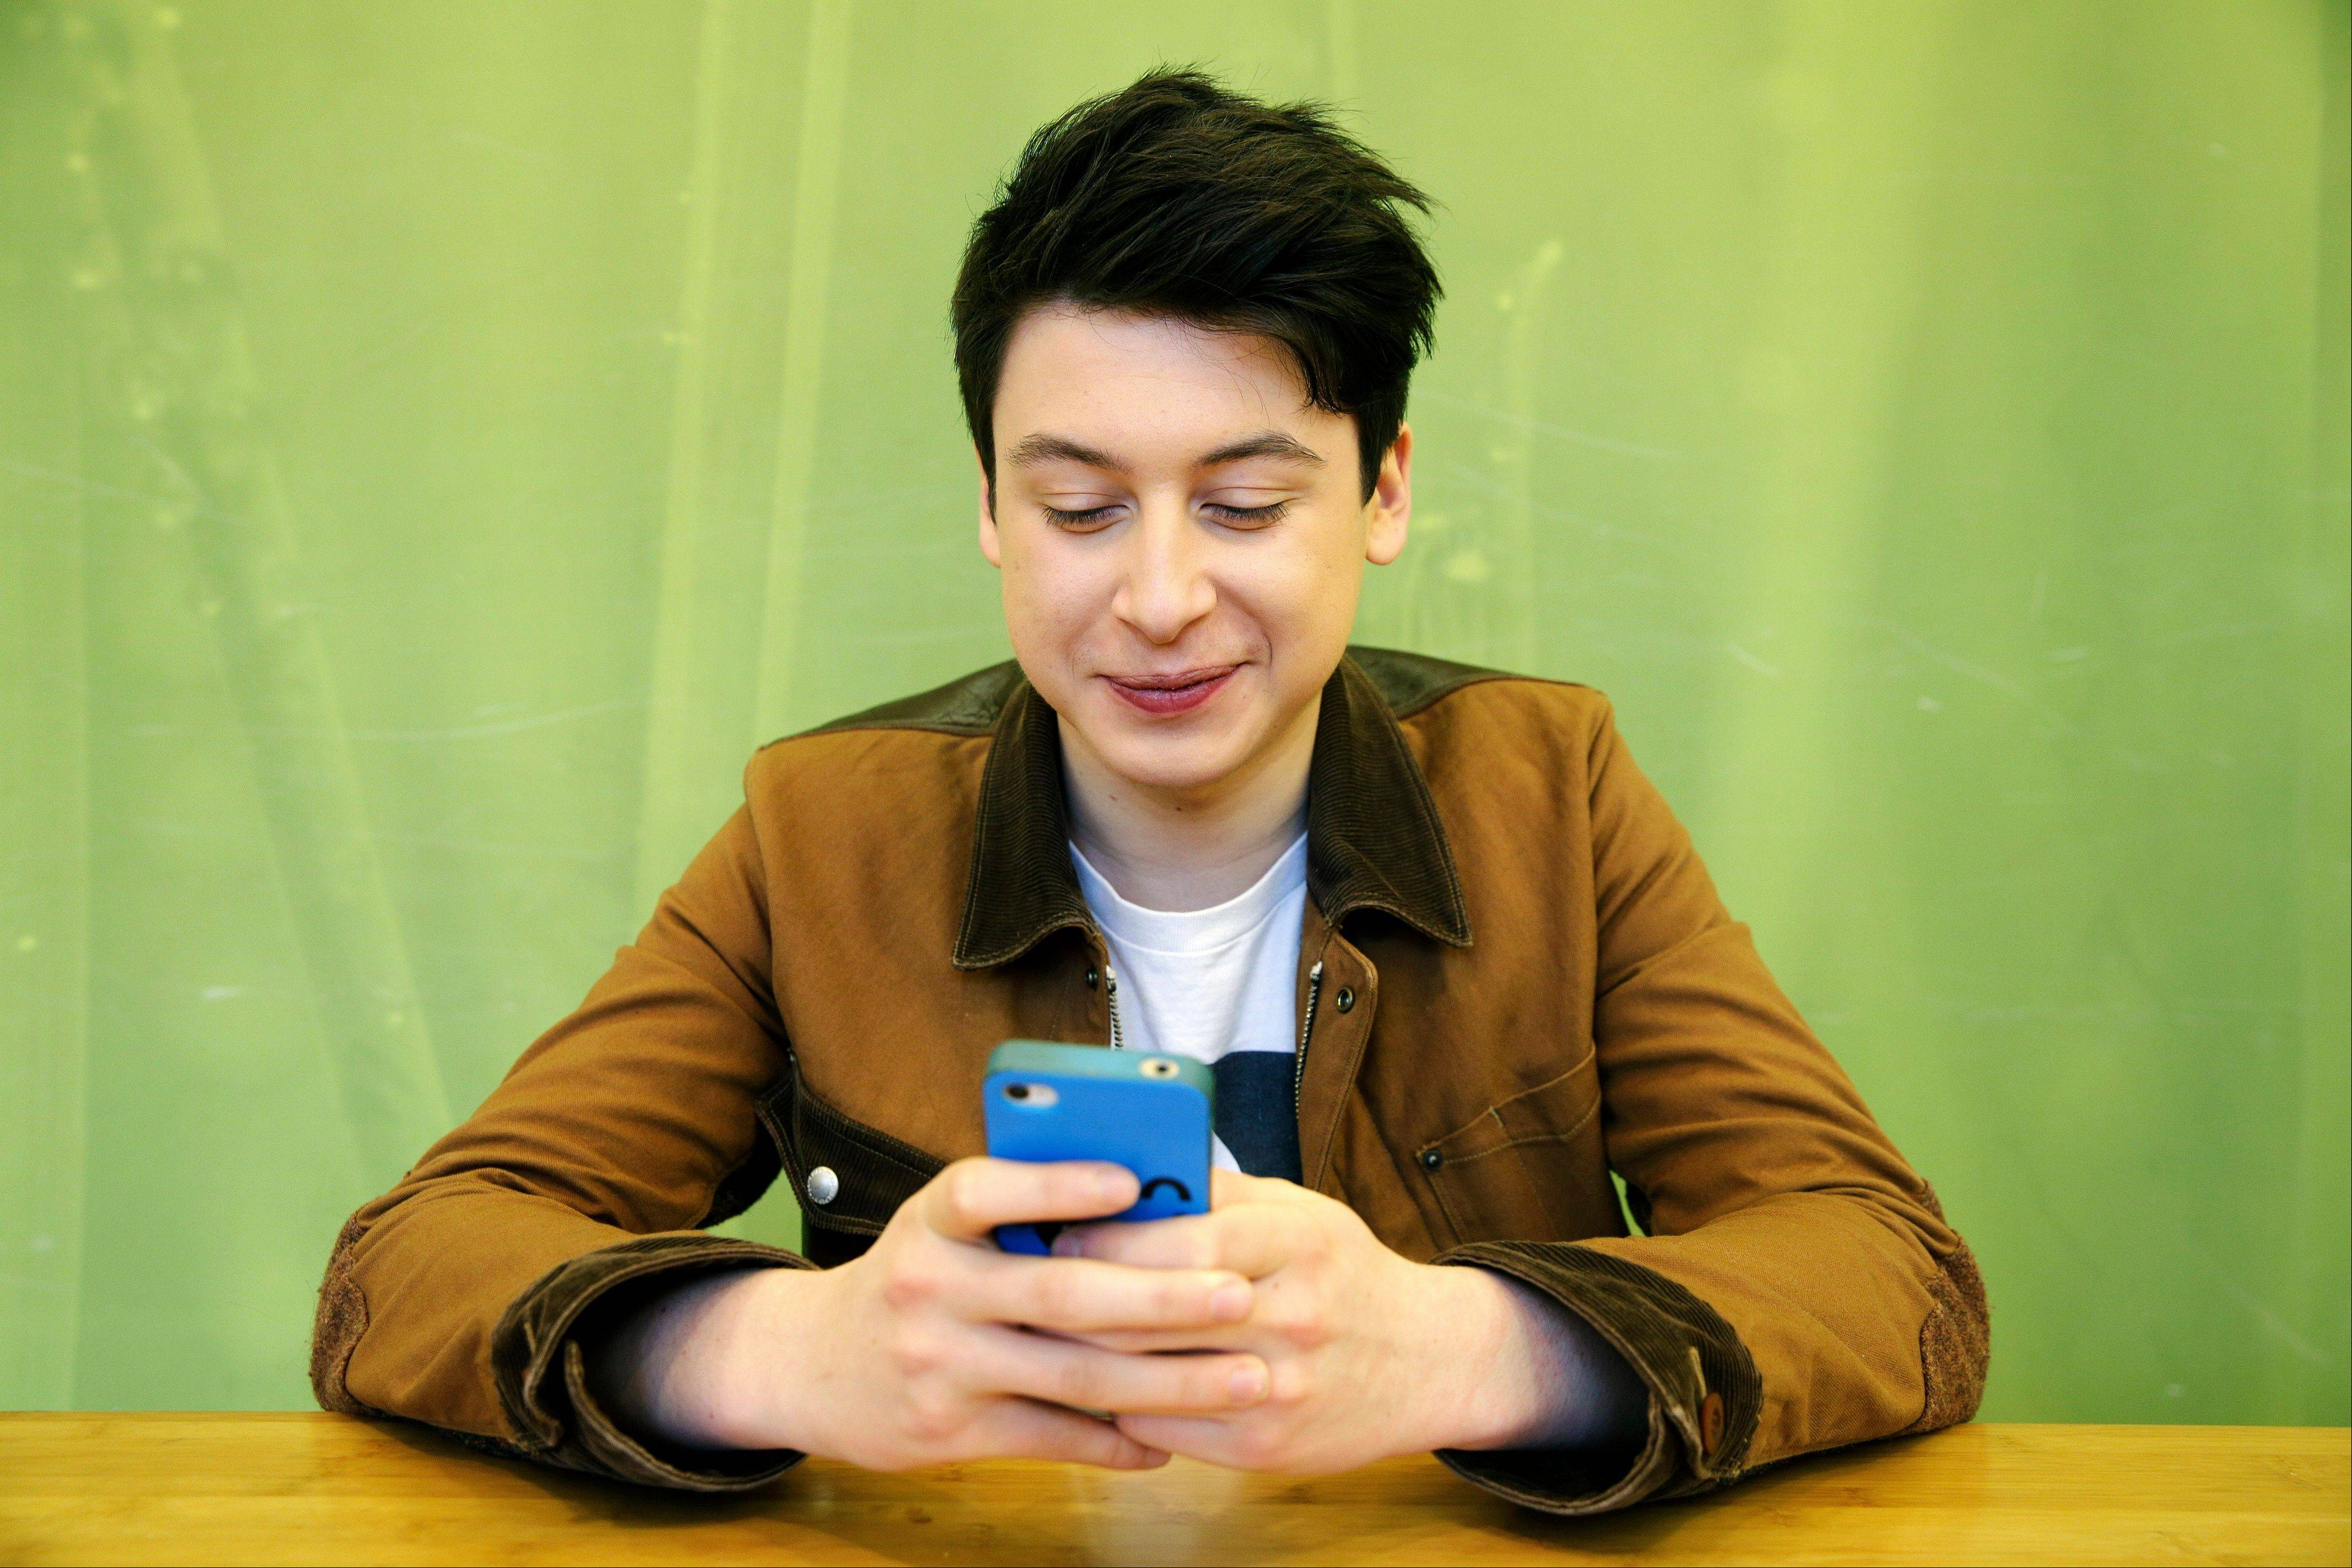 Yahoo! bought the Summly app from 17-year-old Nick D'Aloisio for $30 million.